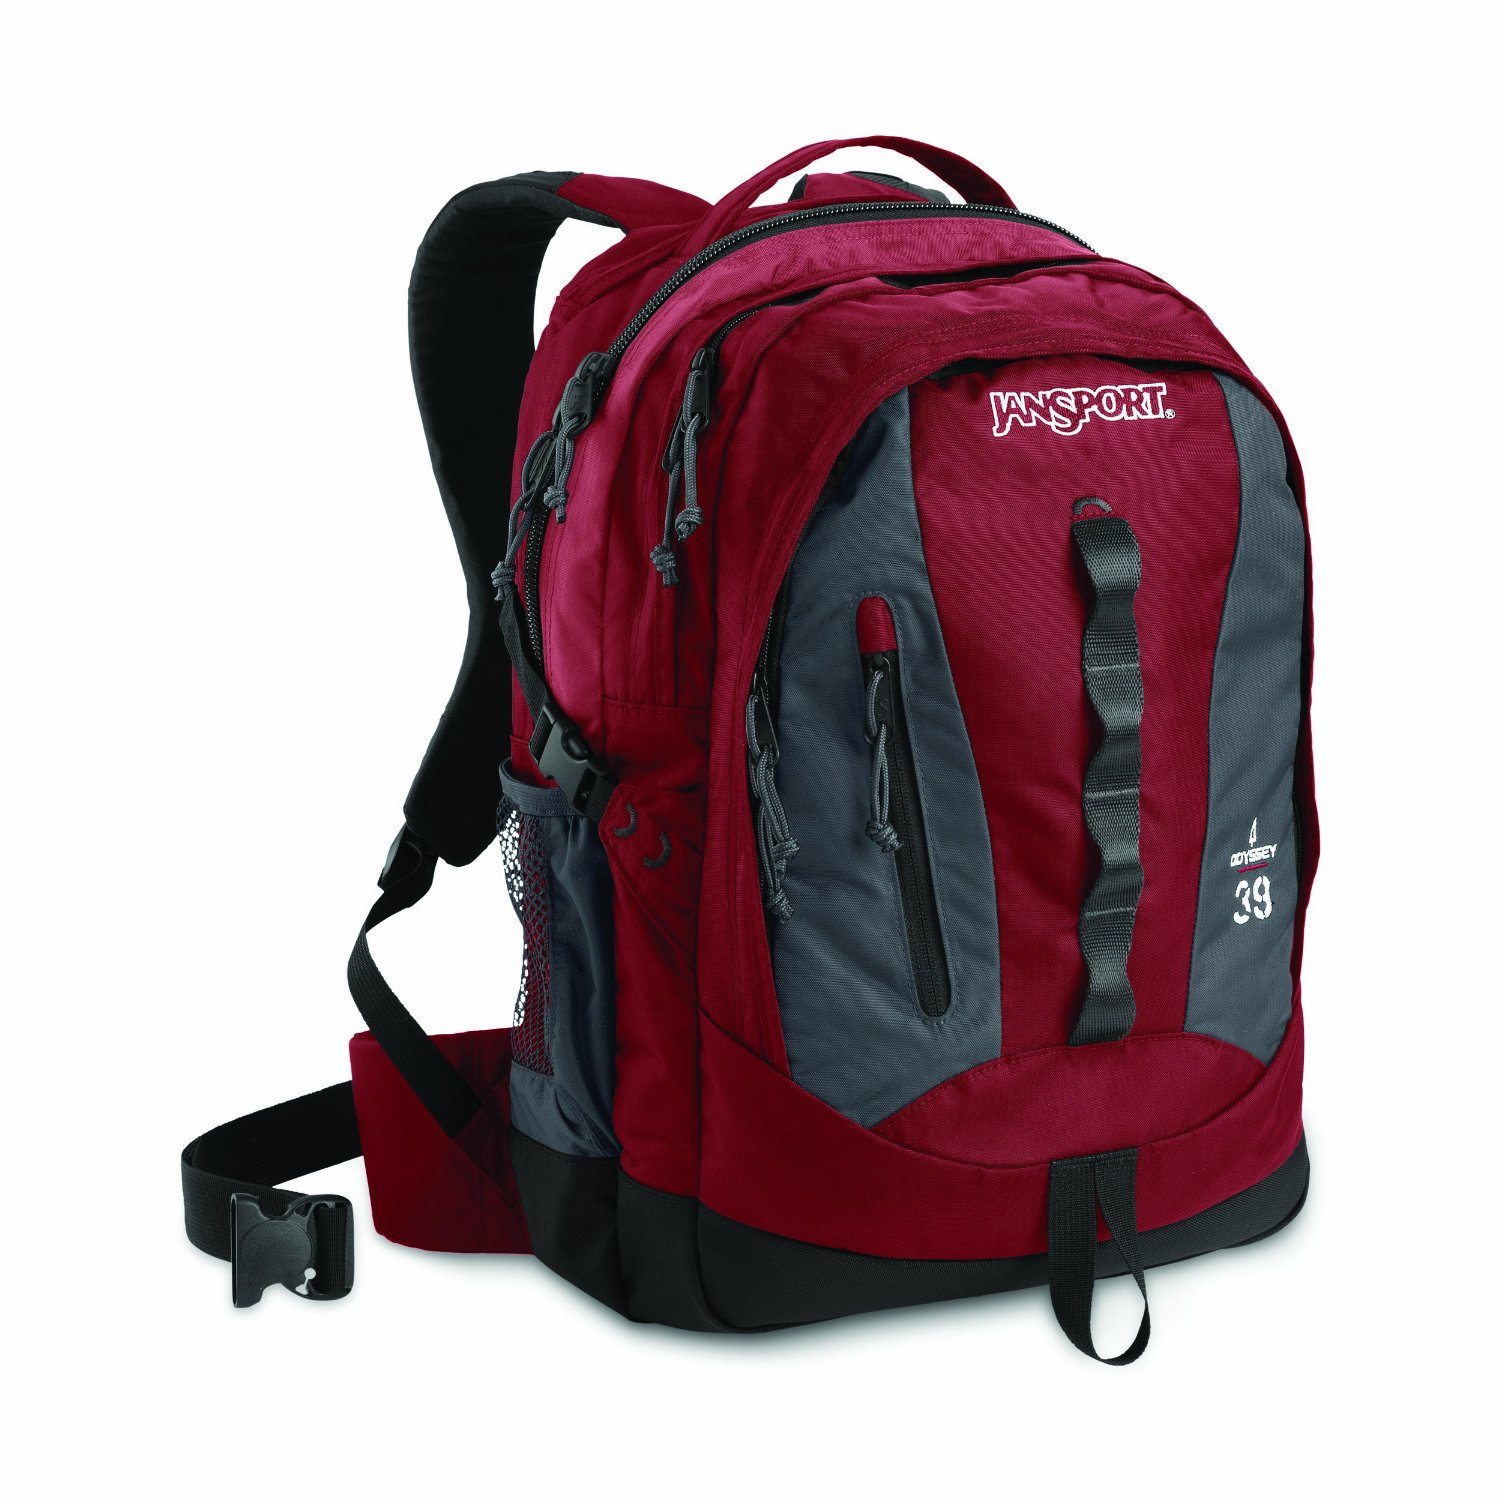 Ask Shelly Recommended backpack diaper bag for travel